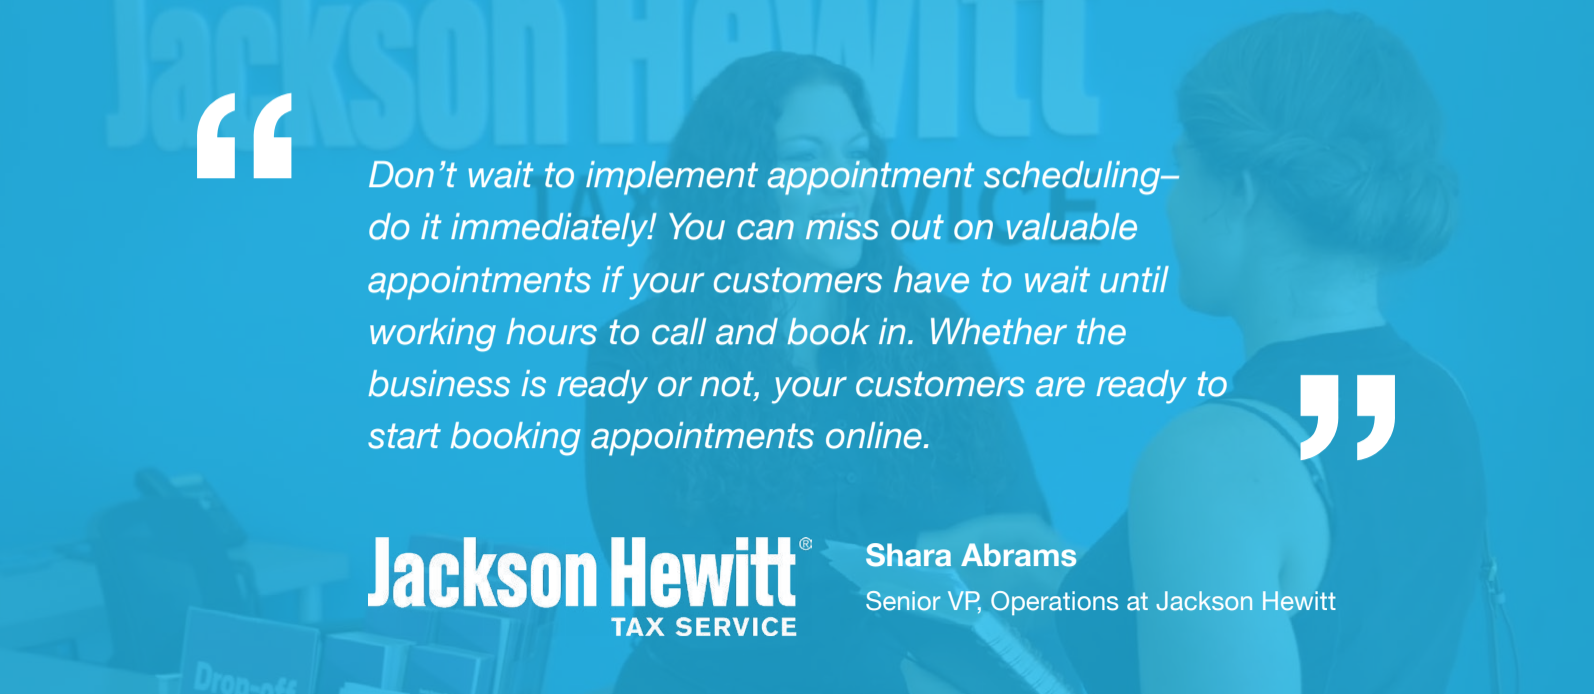 Jackson Hewitt - Appointment Scheduling Quote